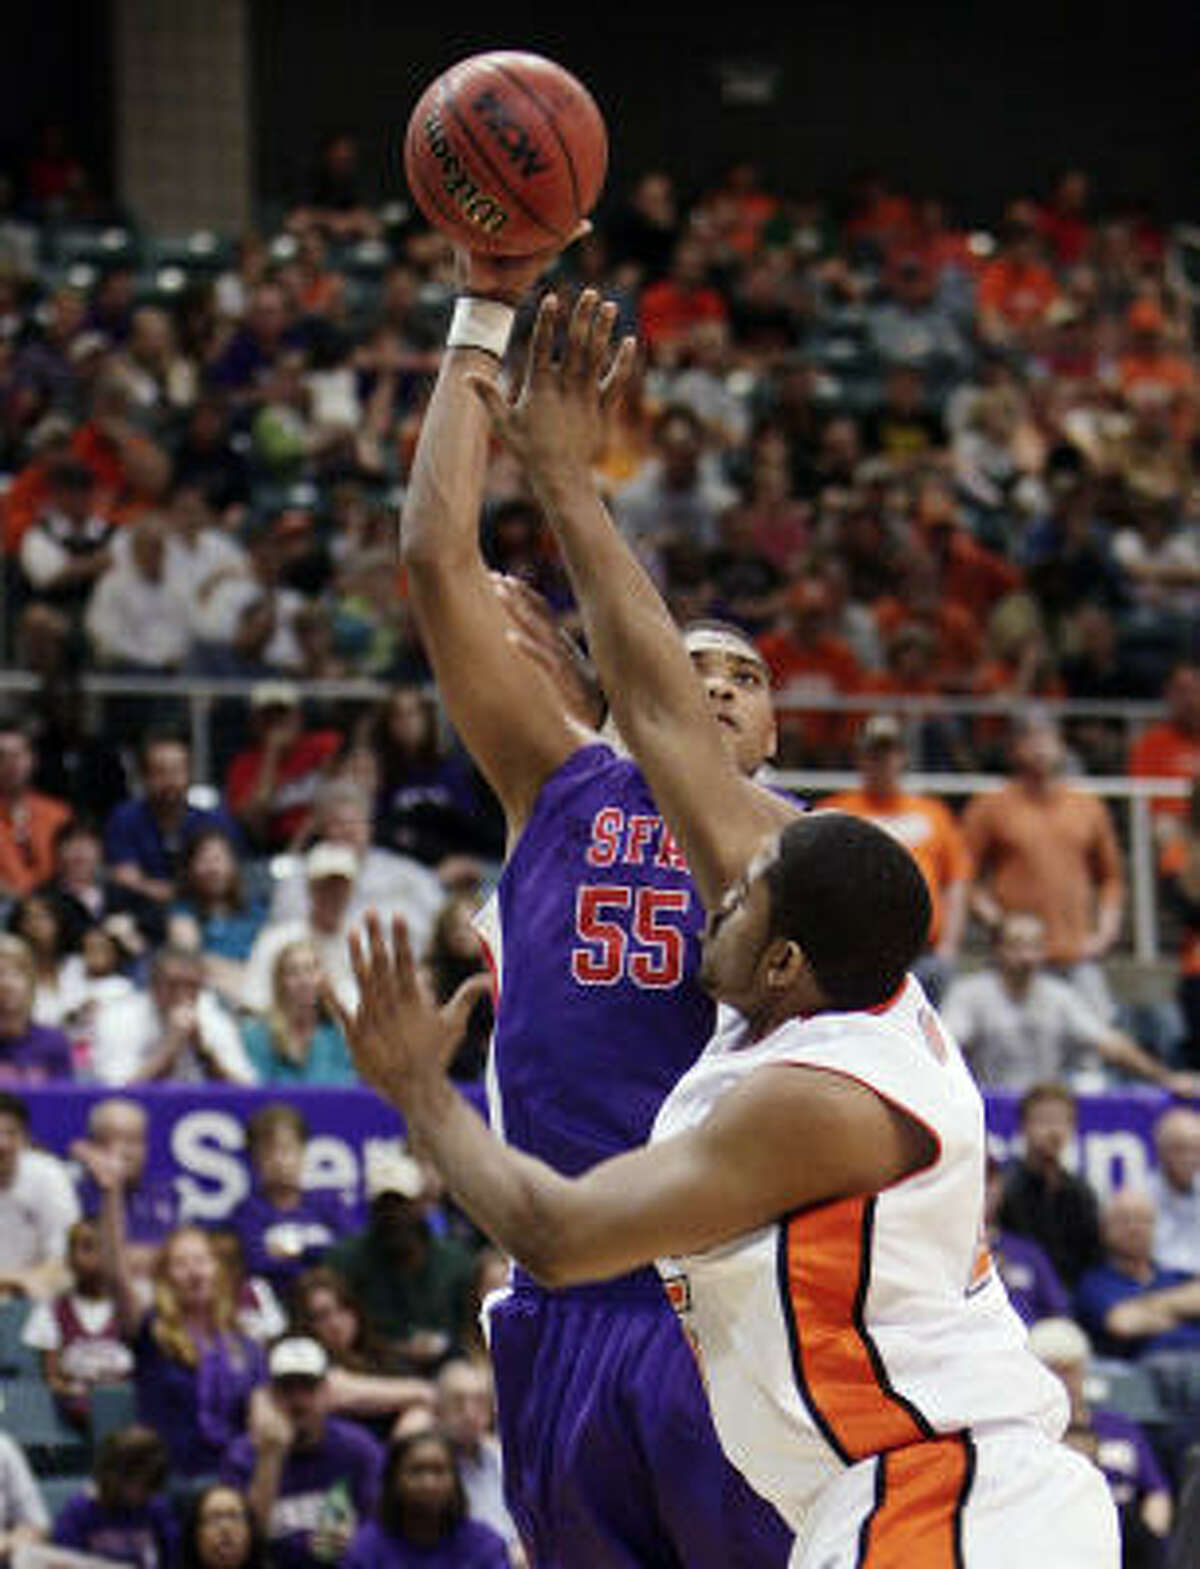 SFA's Jereal Scott shoots over Sam Houston's Antuan Bootle in the second half.